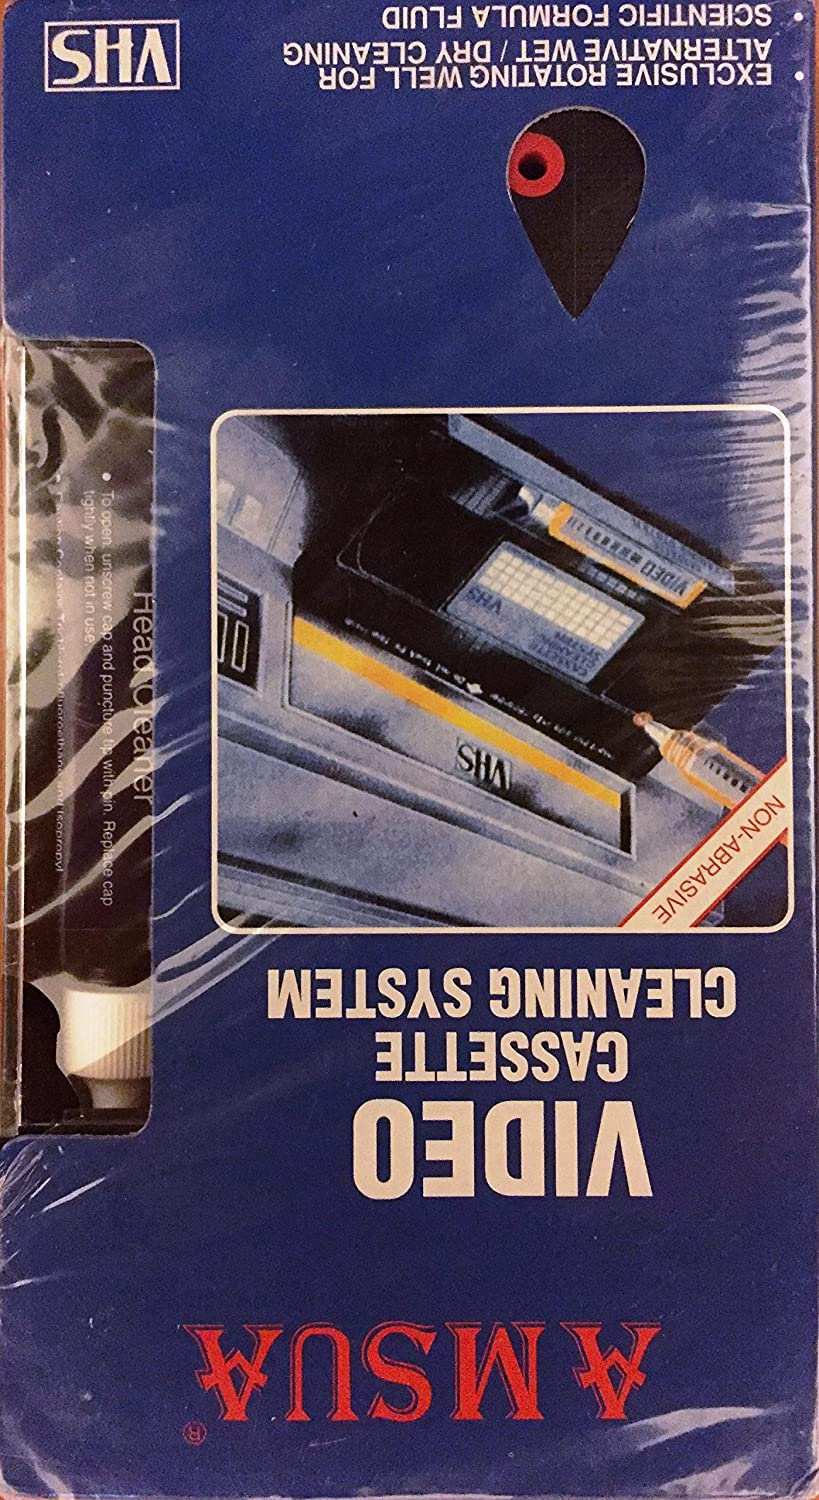 Vhs Svhs Video Tape Head Cassette Cleaning System Halloa Screen Clean Kit Hn 4822 Vcr Cleaner Wet Dry With Fluid